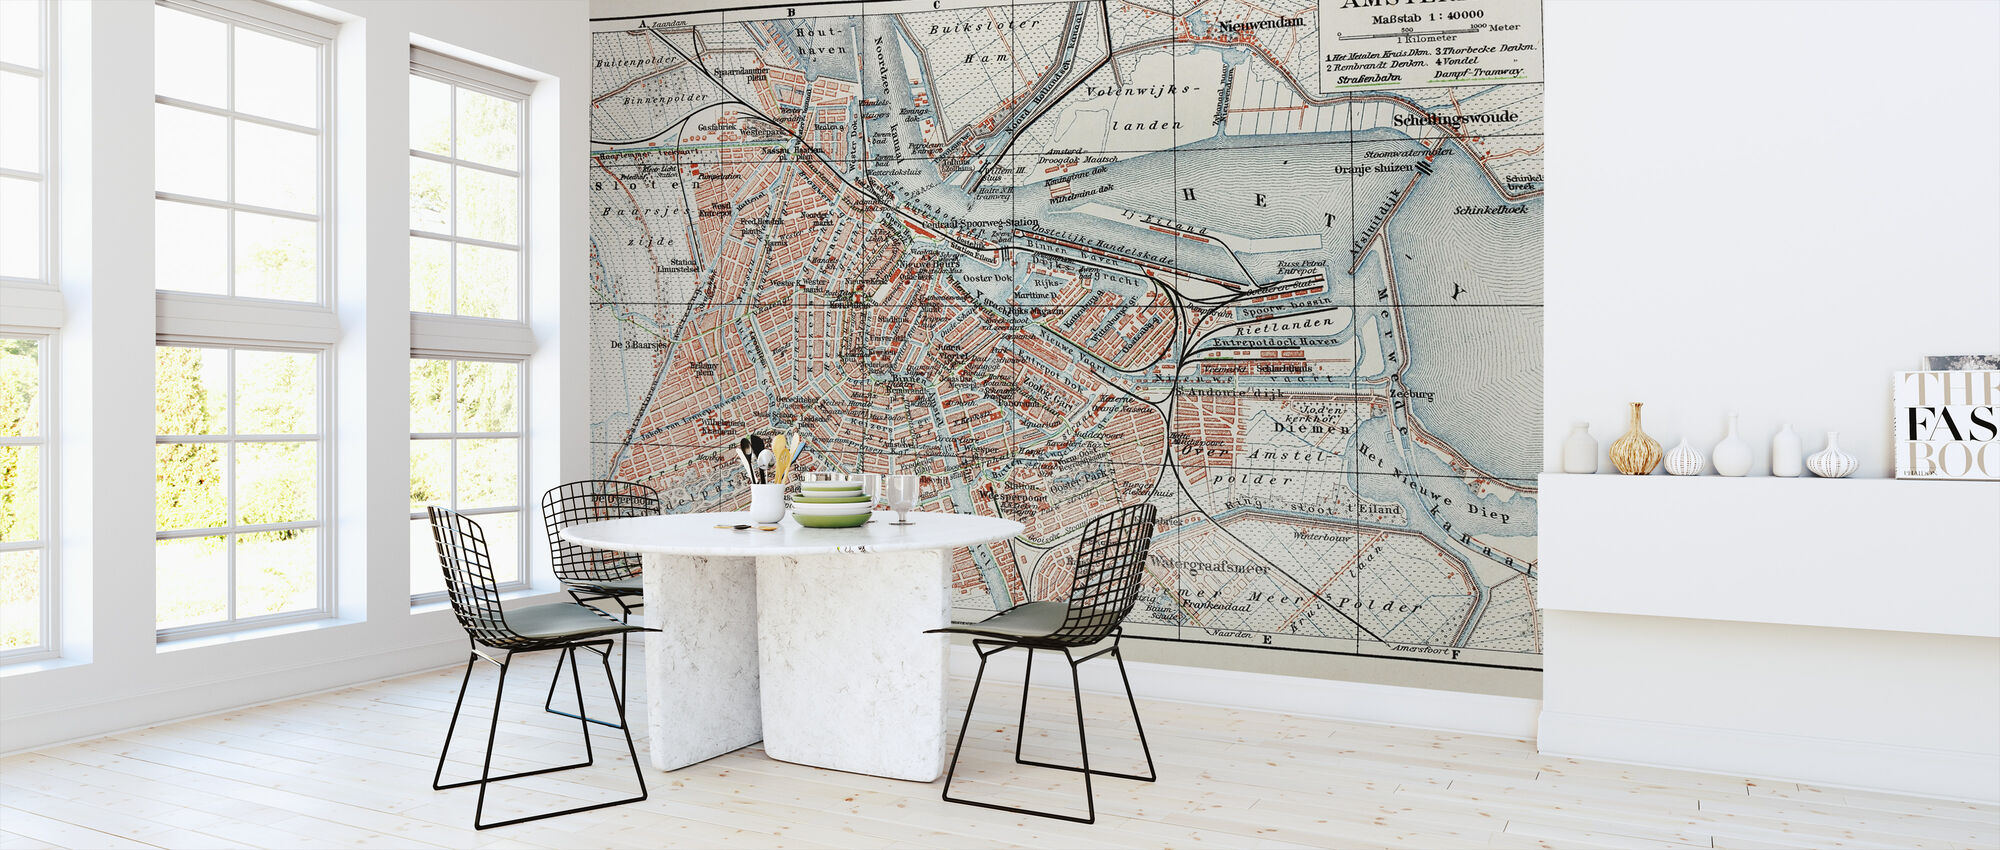 19th Century Old Map of Amsterdam City - Wallpaper - Kitchen